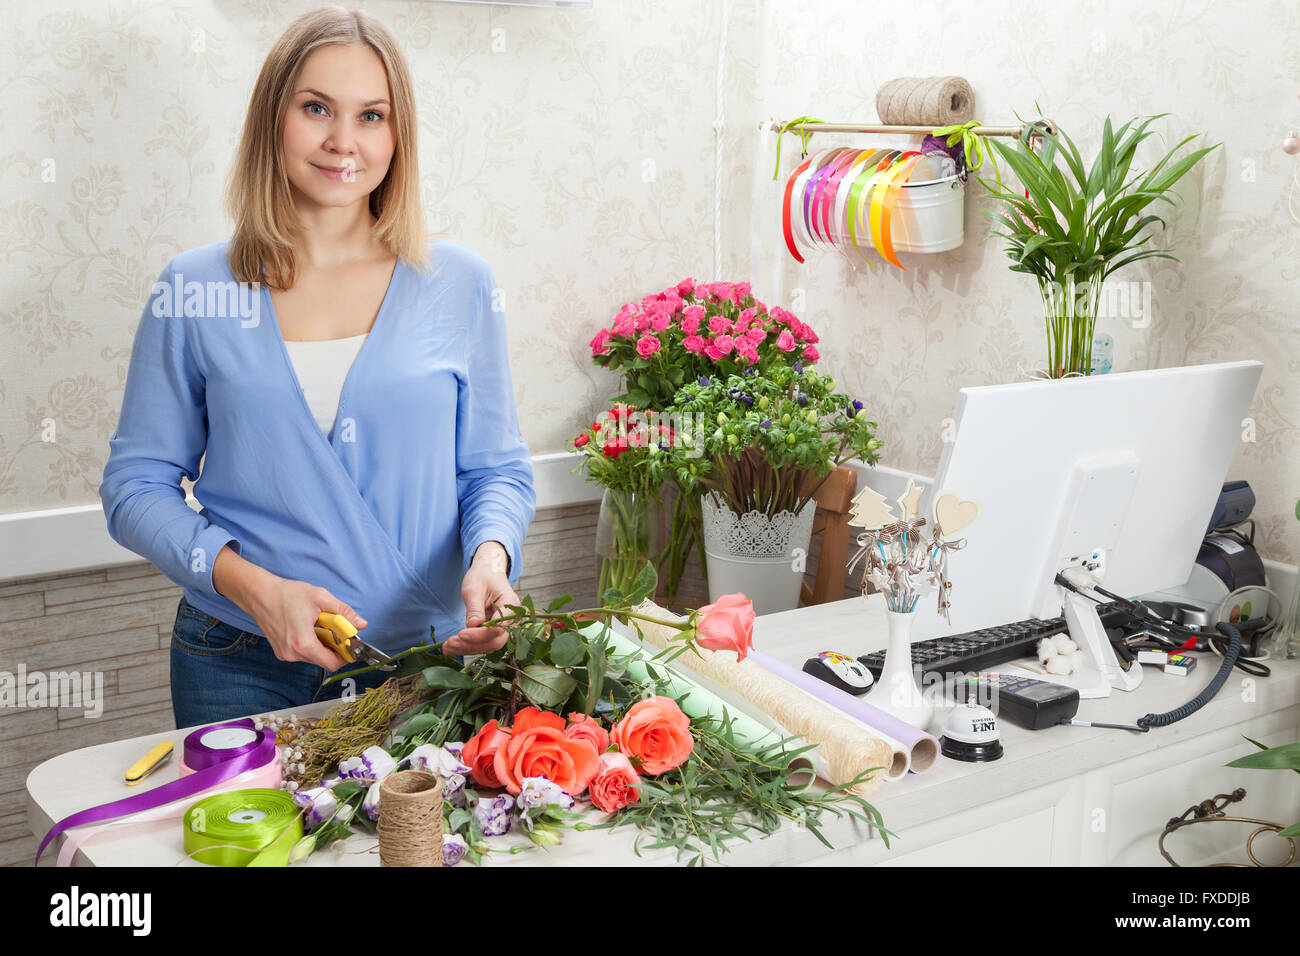 Florist at work with flowers - Stock Image